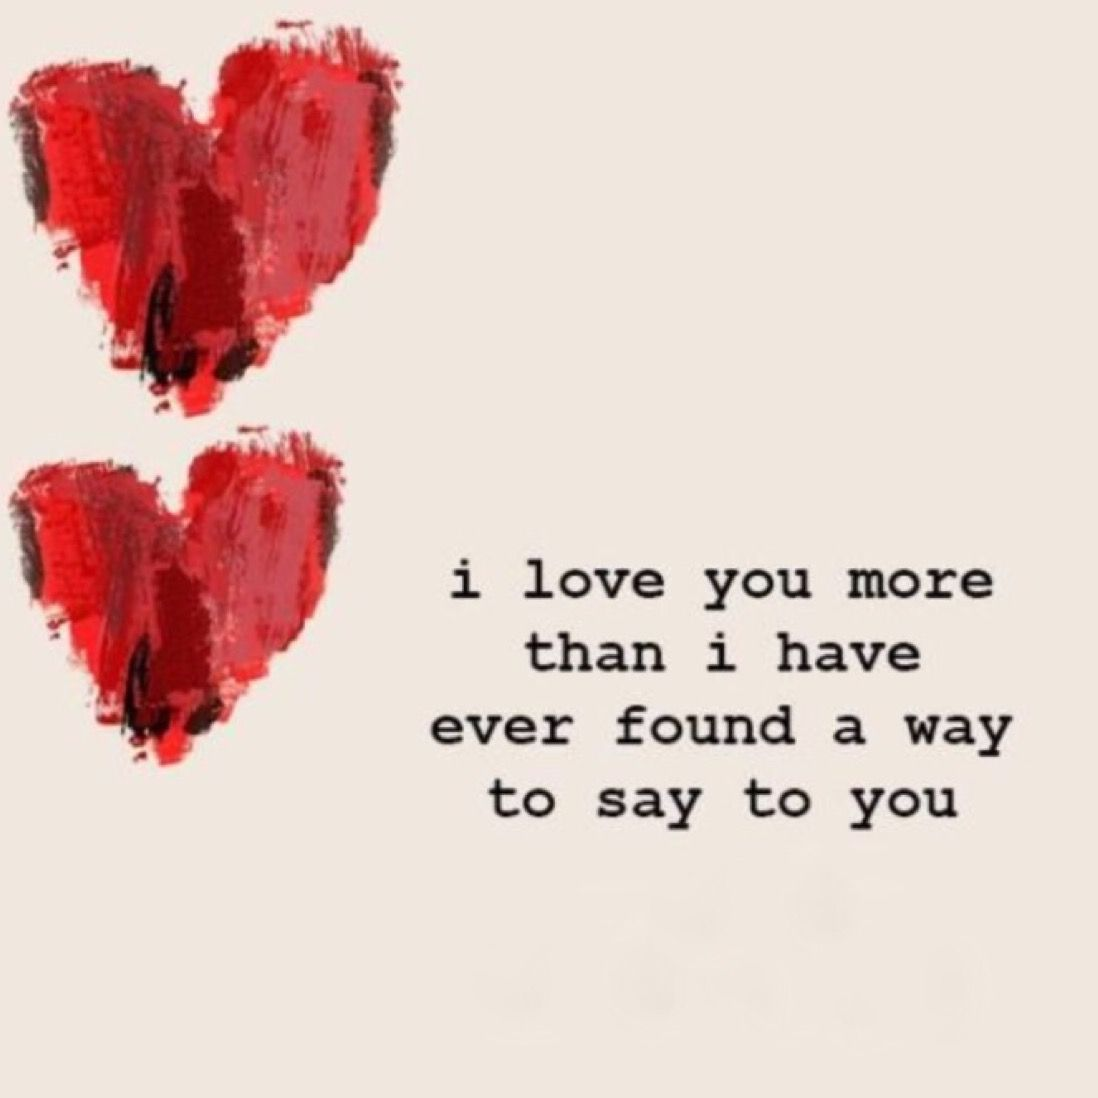 Unique Love Quotes Pinprecious 💎 On Love Box  Pinterest  Box